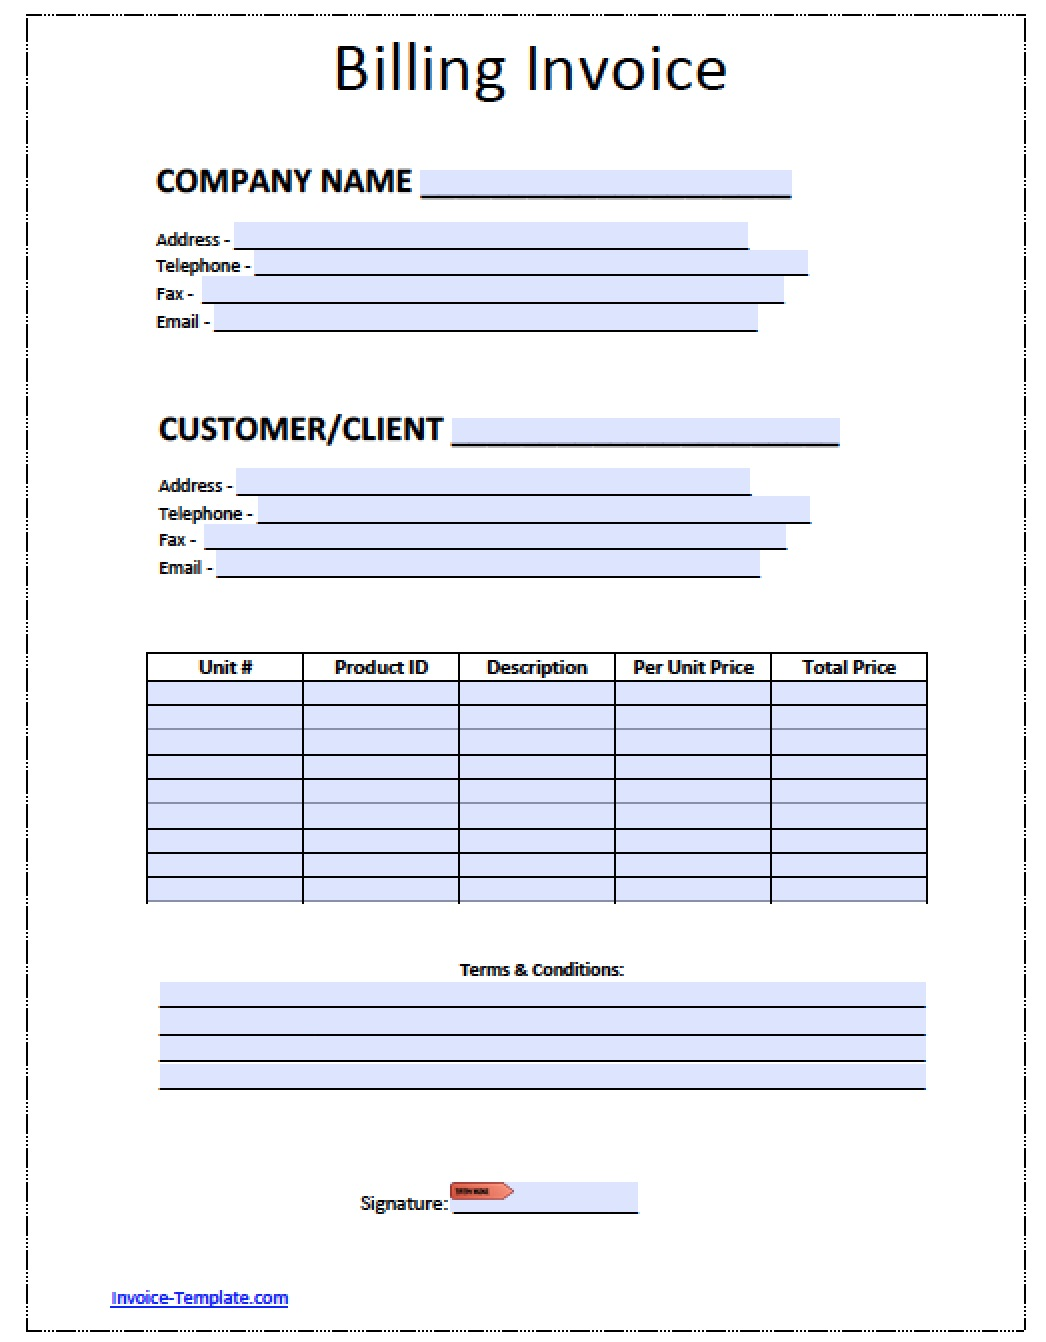 Centralasianshepherdus  Unusual Billing Invoice Invoices Faq U Cloudflare Support Billing  With Lovable Free Billing Invoice Template  Excel  Pdf  Word Doc  Billing With Cute Receipt Format Excel Also Sample Receipt For Payment Received In Addition American Depository Receipts Adr And Receipt Form For Payment As Well As Certified Mail And Return Receipt Fees Additionally Rent Receipt Uk From Happytomco With Centralasianshepherdus  Lovable Billing Invoice Invoices Faq U Cloudflare Support Billing  With Cute Free Billing Invoice Template  Excel  Pdf  Word Doc  Billing And Unusual Receipt Format Excel Also Sample Receipt For Payment Received In Addition American Depository Receipts Adr From Happytomco